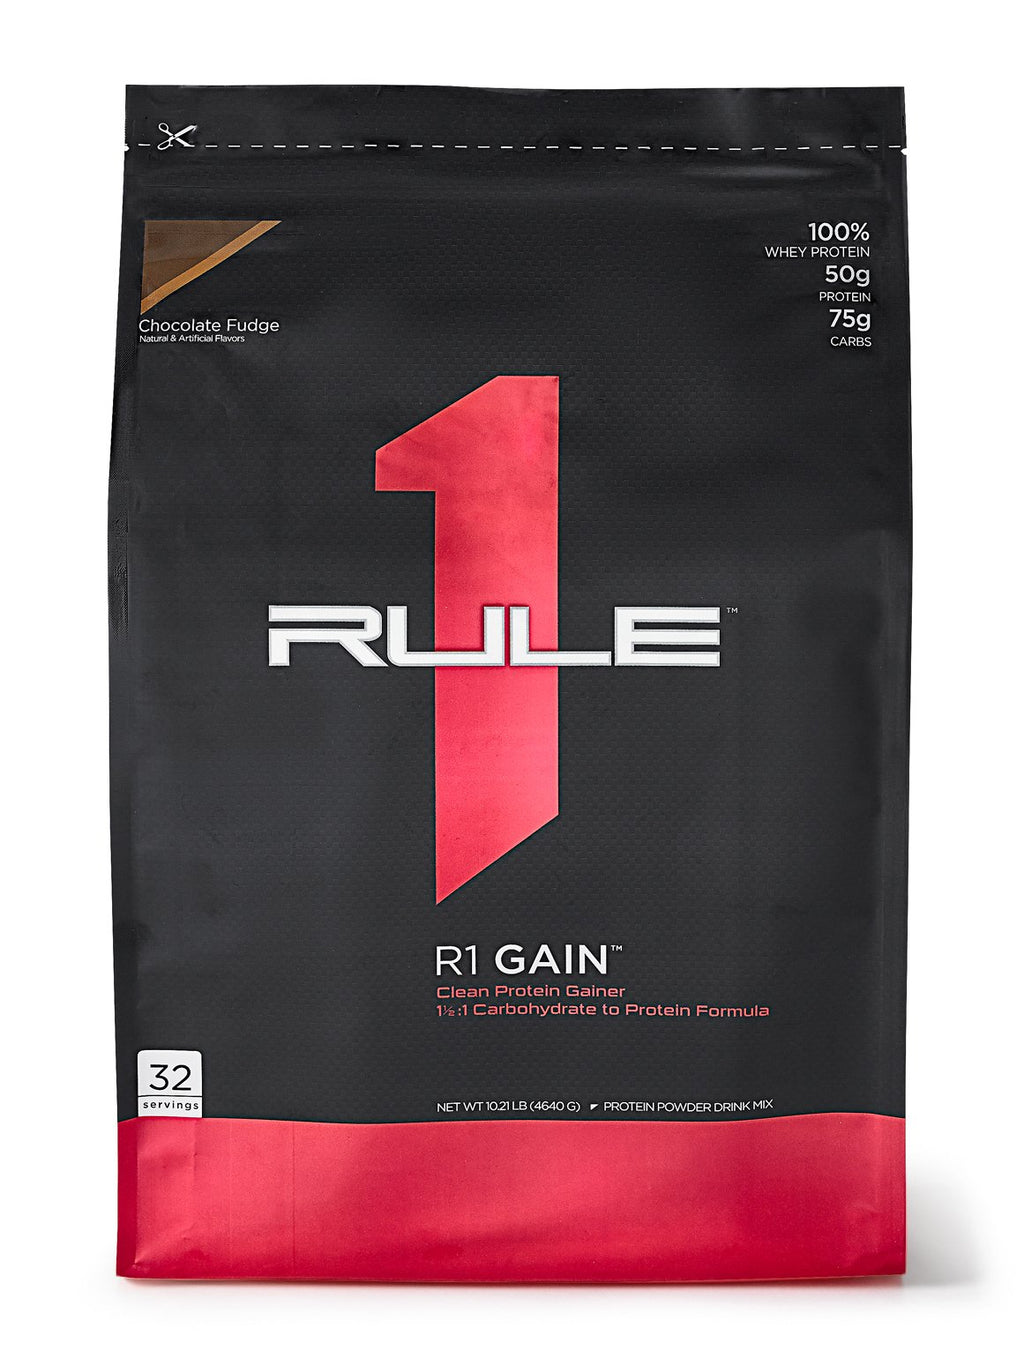 R1 Gain, 32 Servings - 10.2 lb